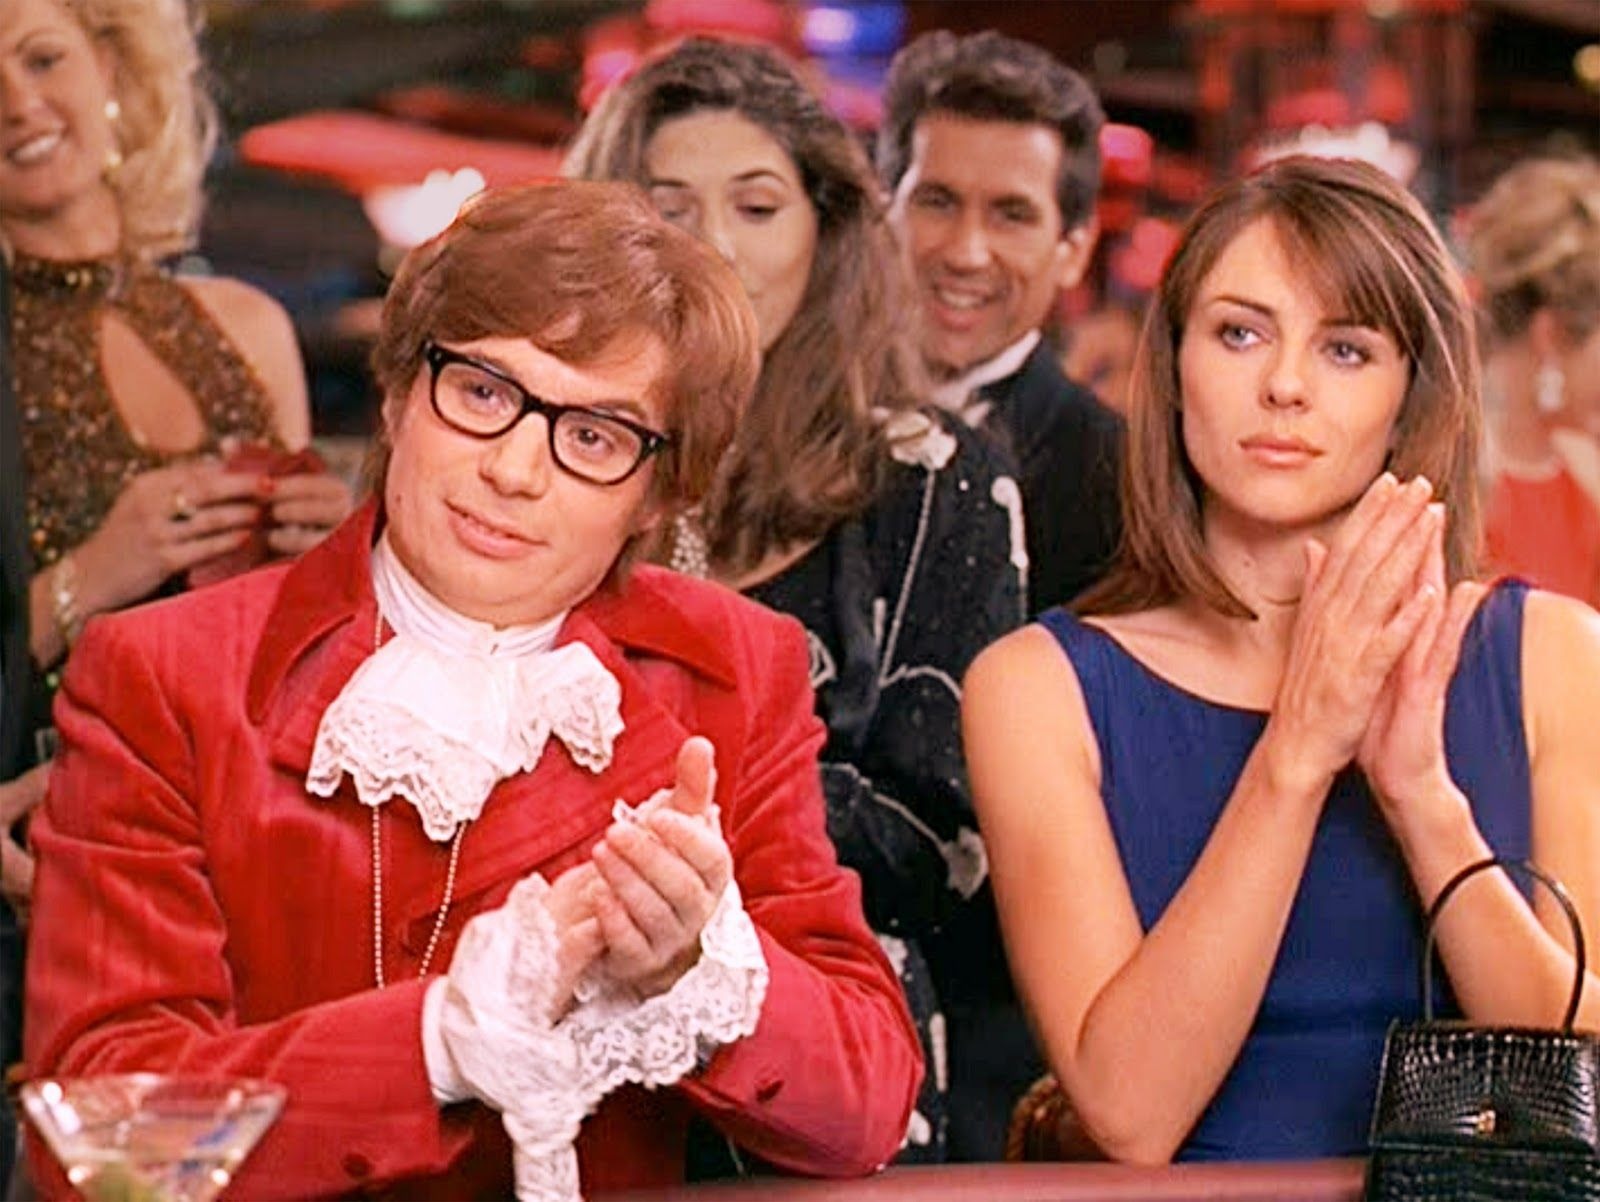 Mike Myers as secret agent Austin Powers, cryogenically defrosted from the 1960s, and Vanessa Kensington (Elizabeth Hurley) in Austin Powers, International Man of Mystery (1997)